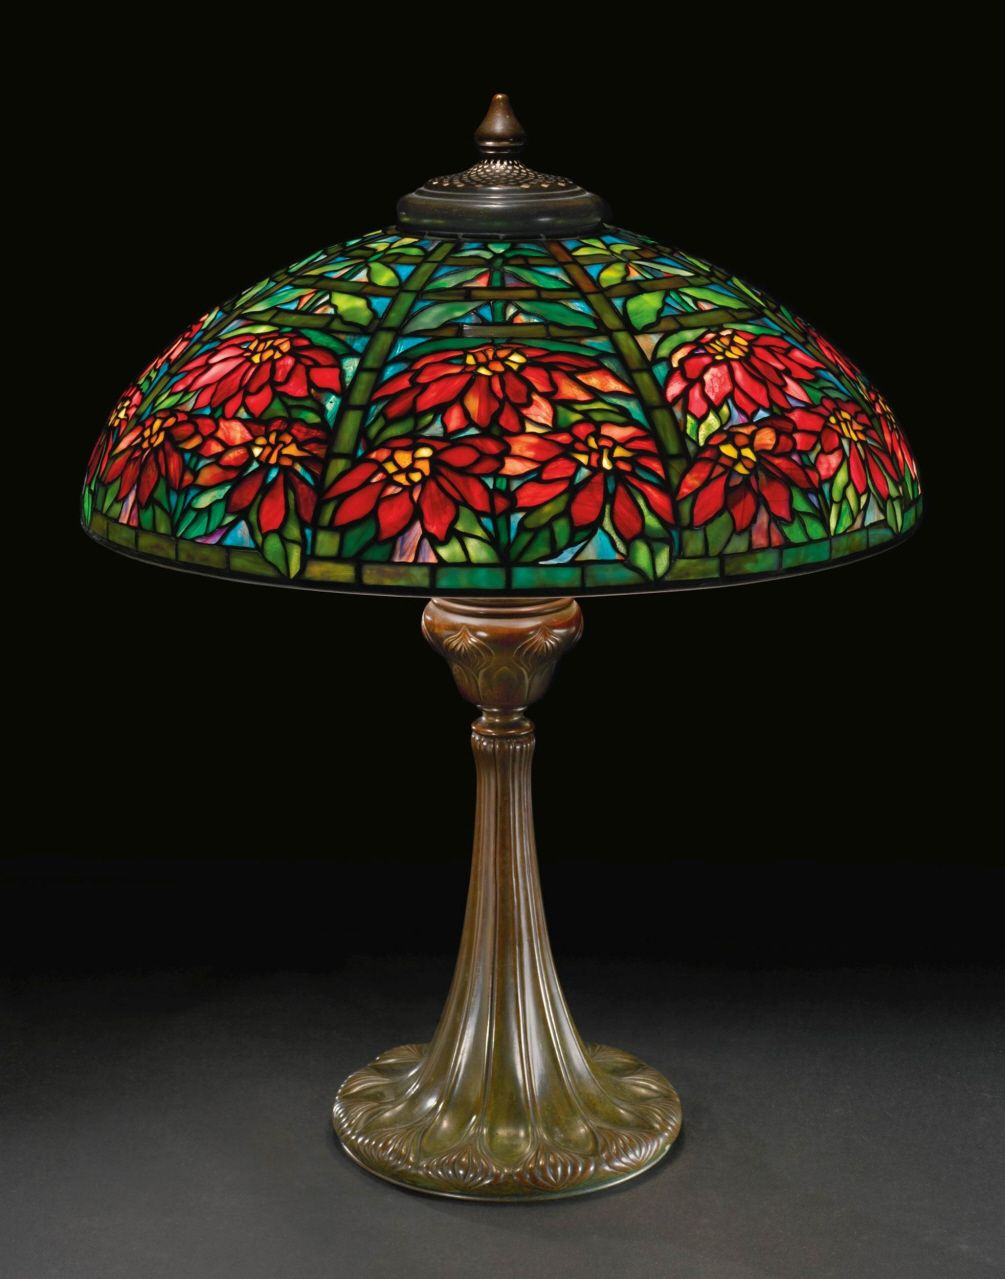 Rare Tiffany Studios Quot Double Poinsettia Quot Table Lamp What